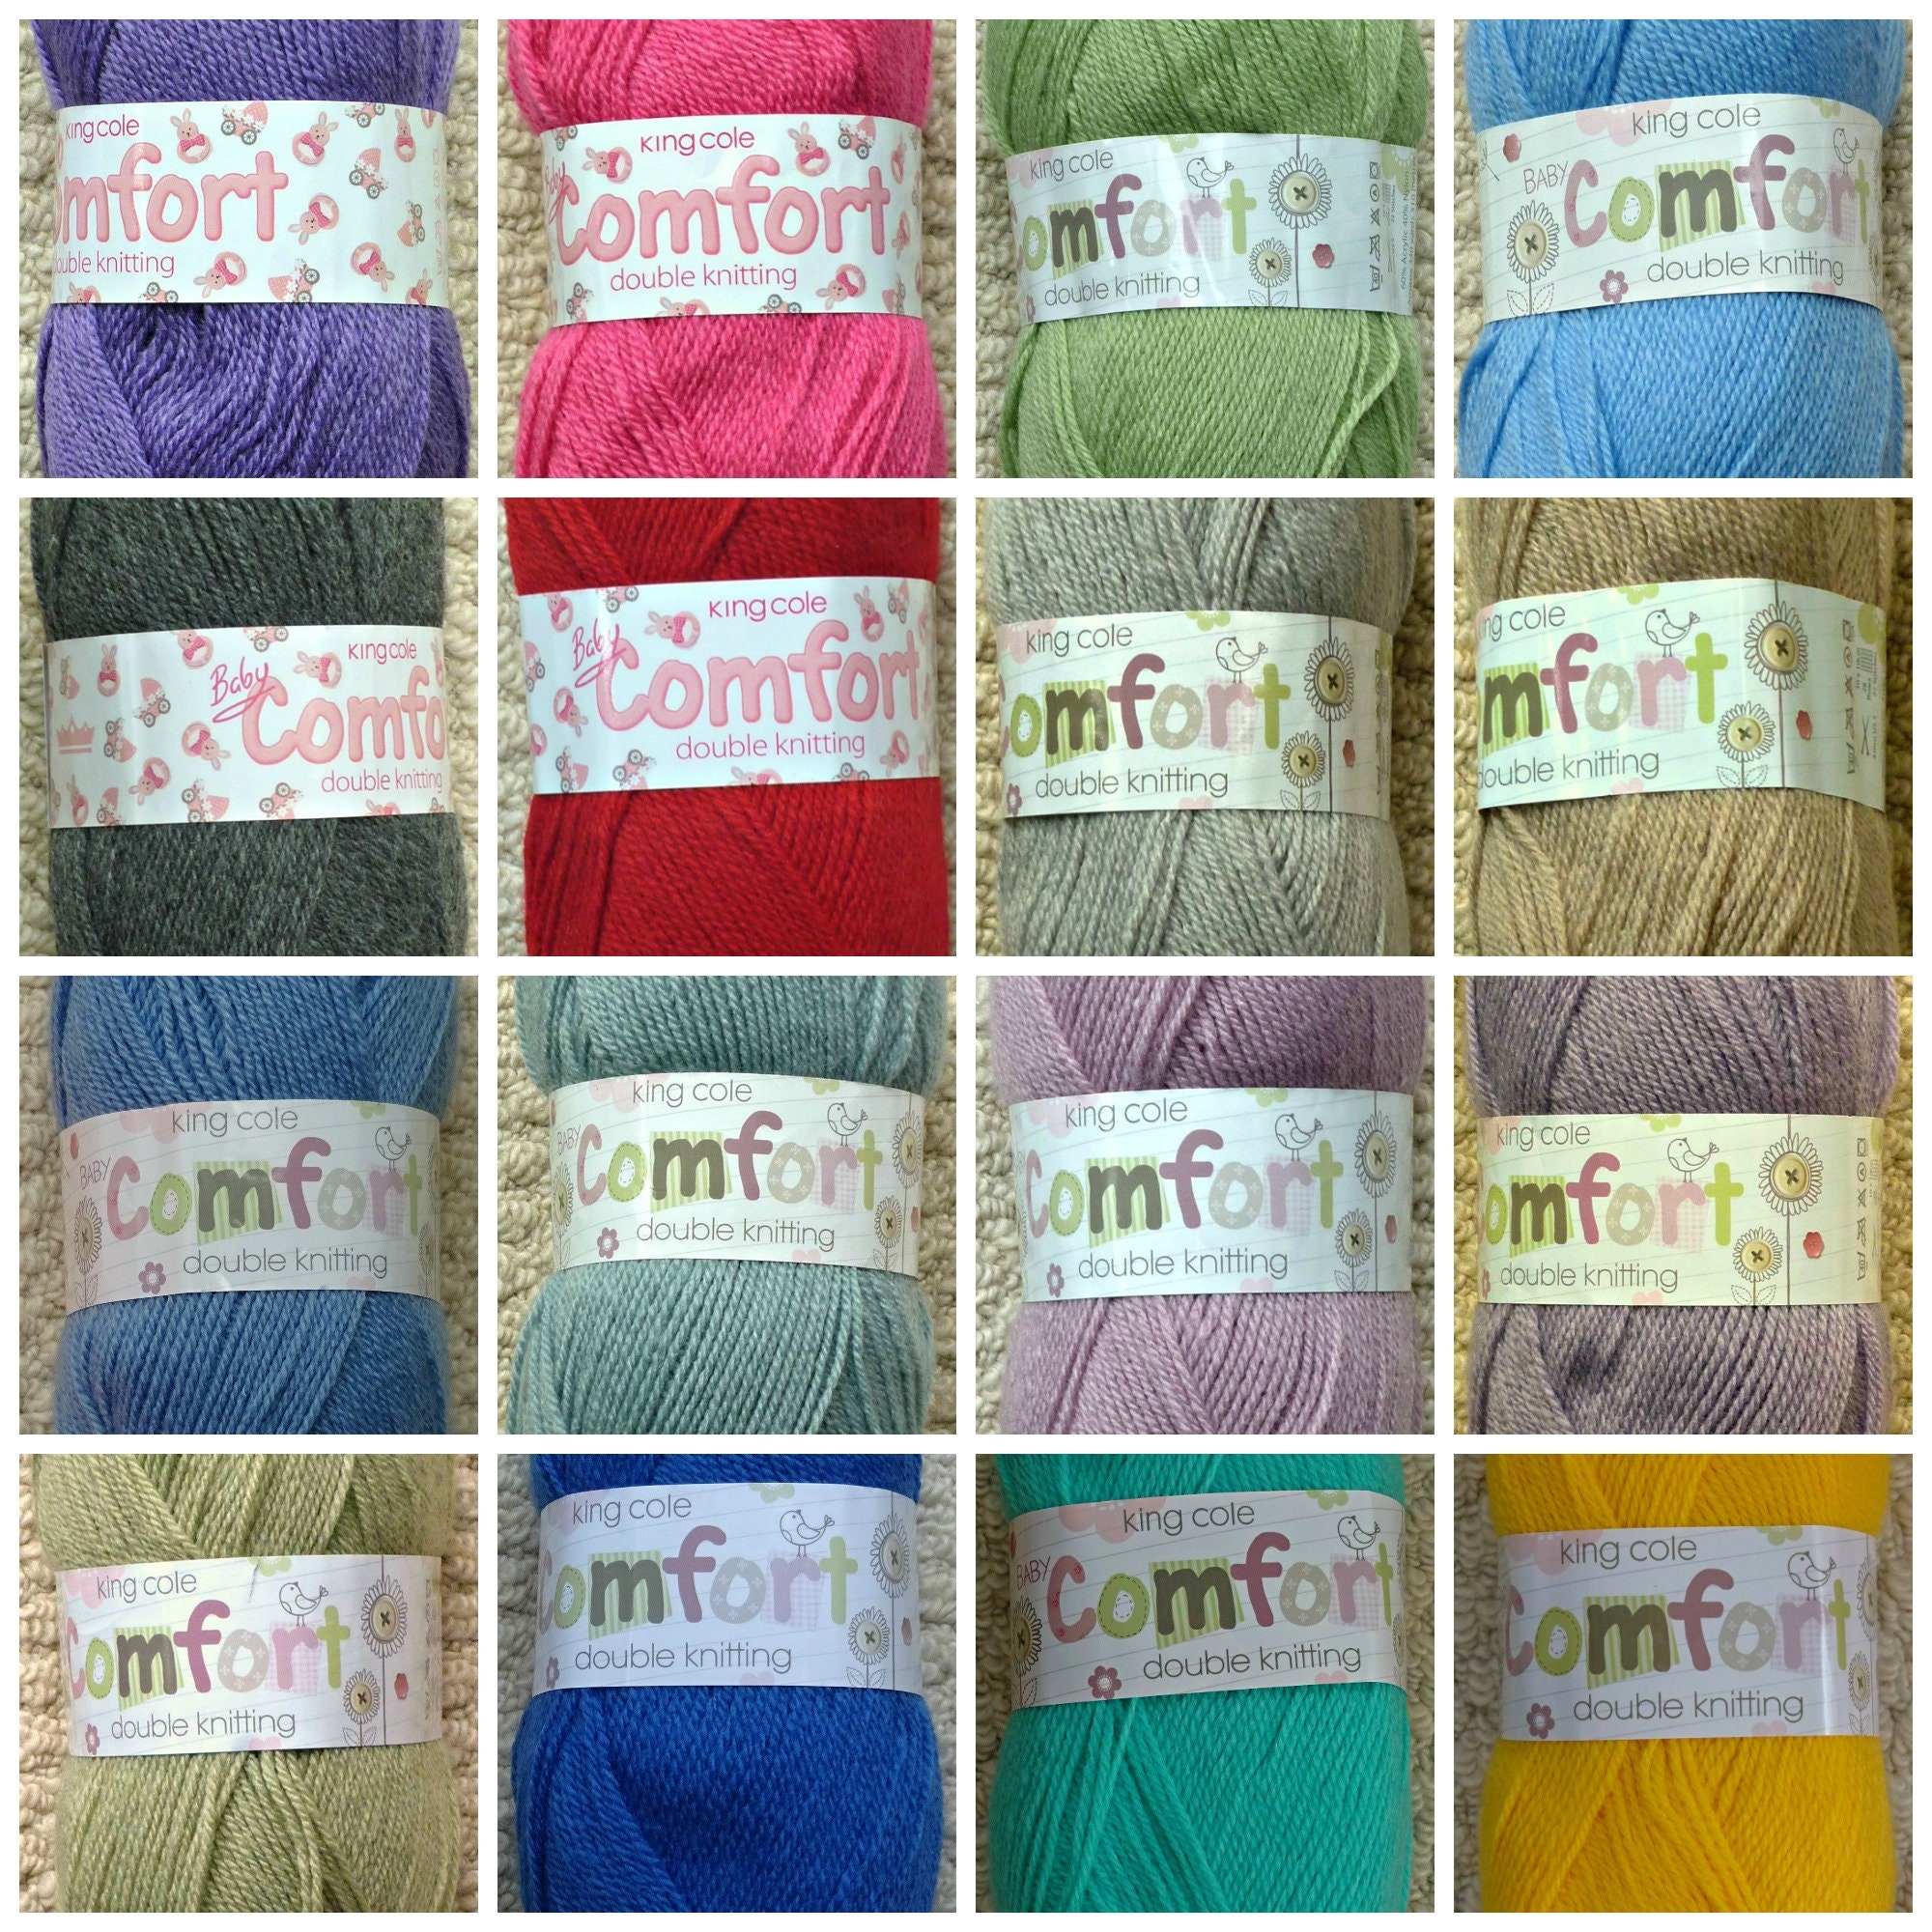 6 Shades available King Cole 100grm Baby Comfort 4 Ply